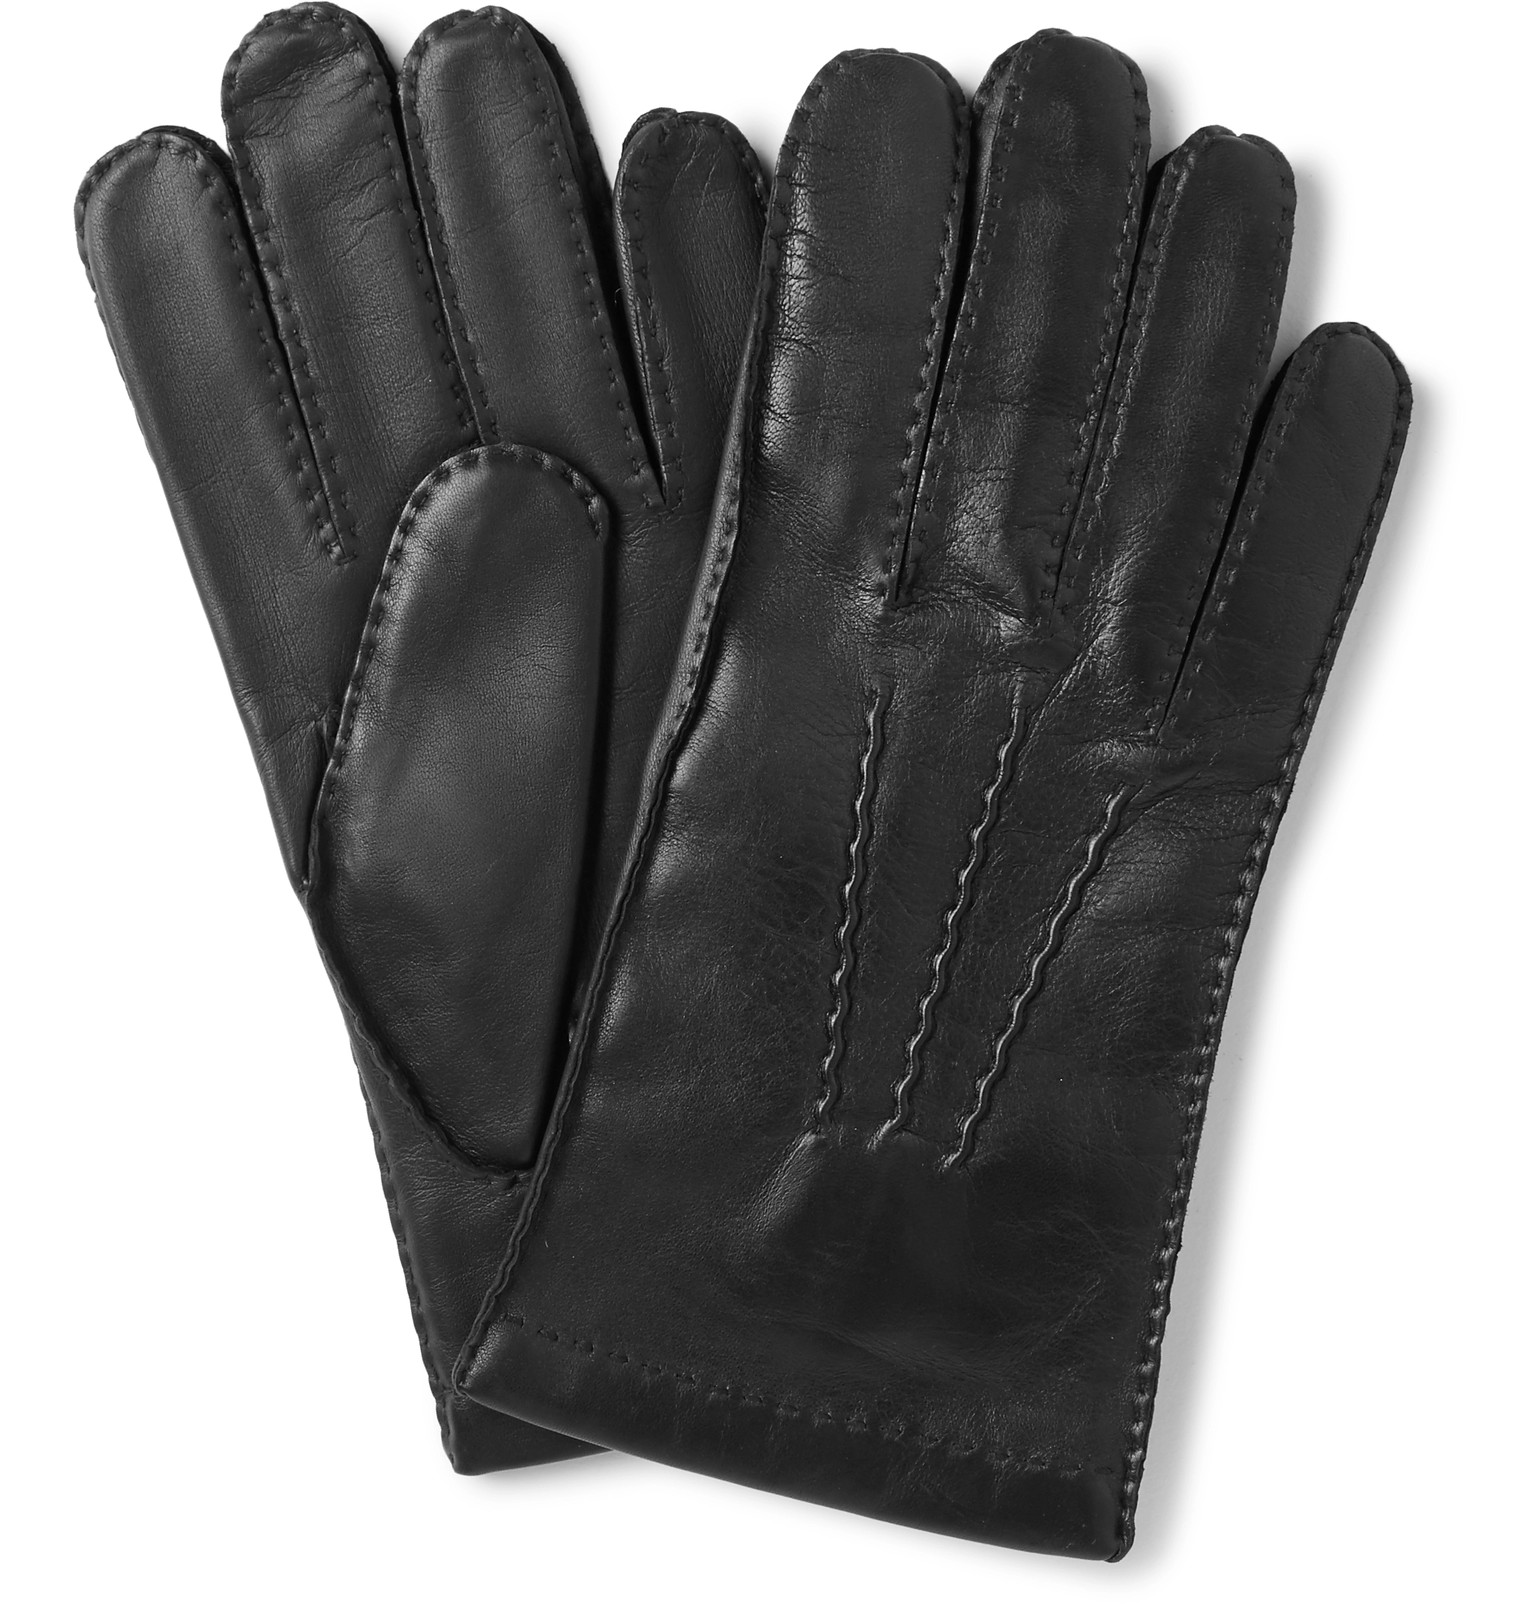 Xxl black leather gloves - Dentsshaftesbury Touchscreen Cashmere Lined Leather Gloves